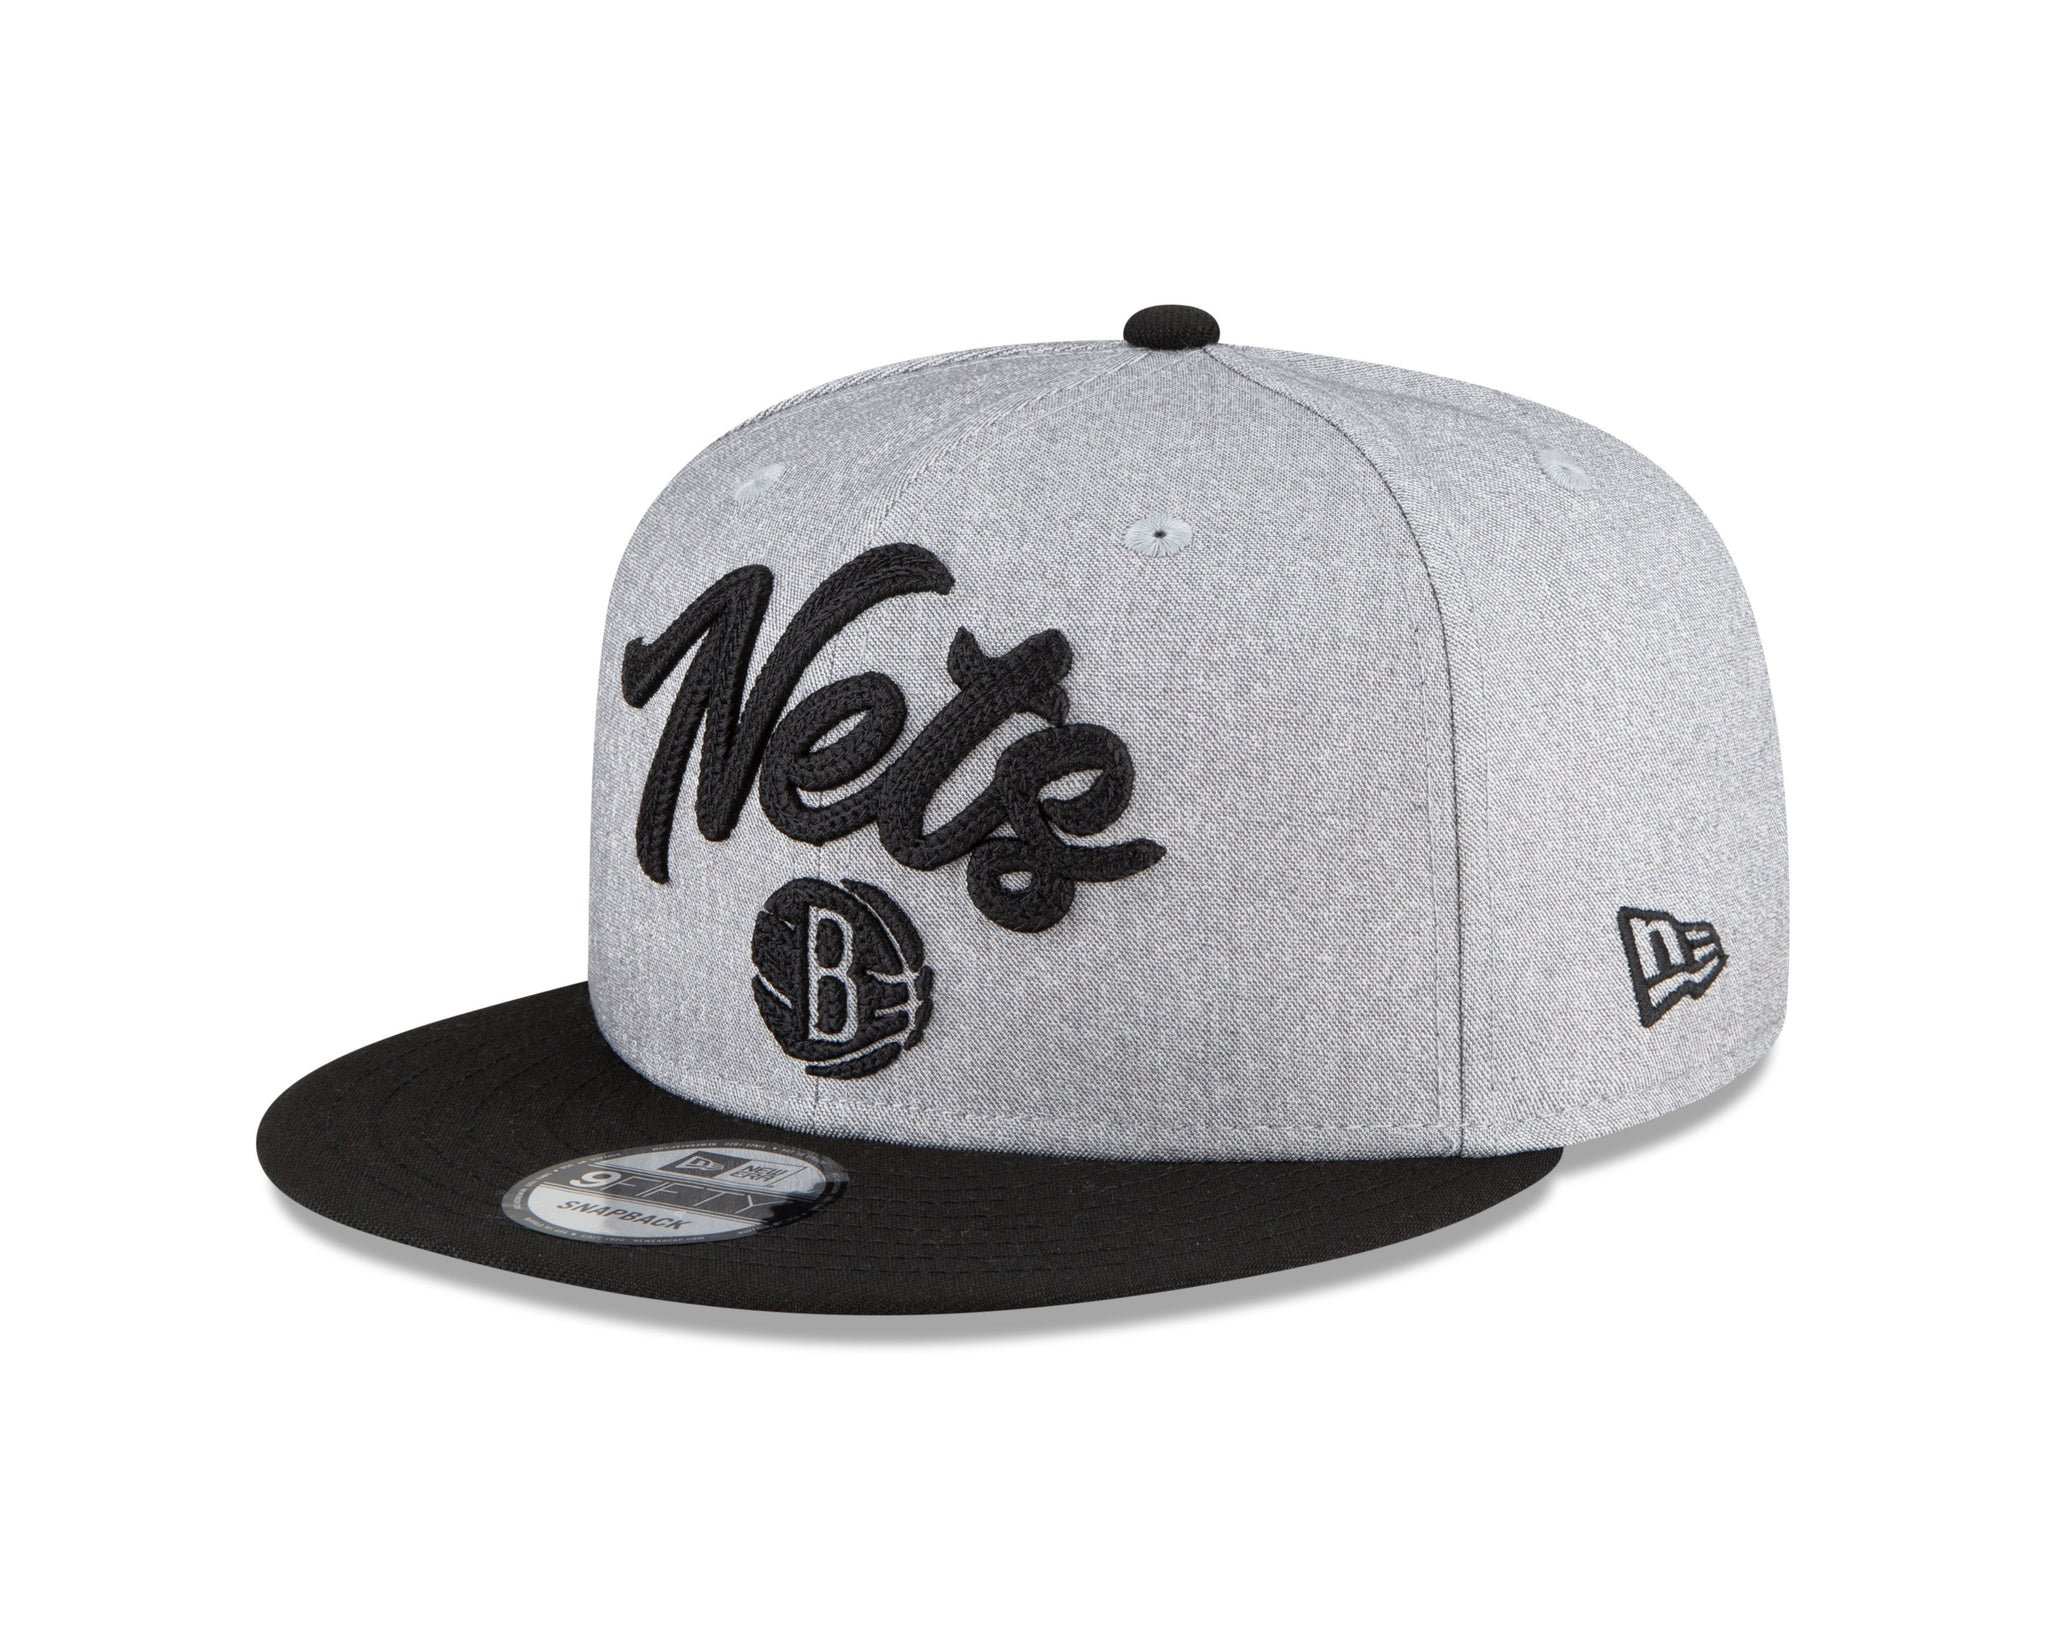 Youth Brooklyn Nets New Era 2020 NBA Draft Collection Offical 9Fifty Snapback Cap - NetsStore.com